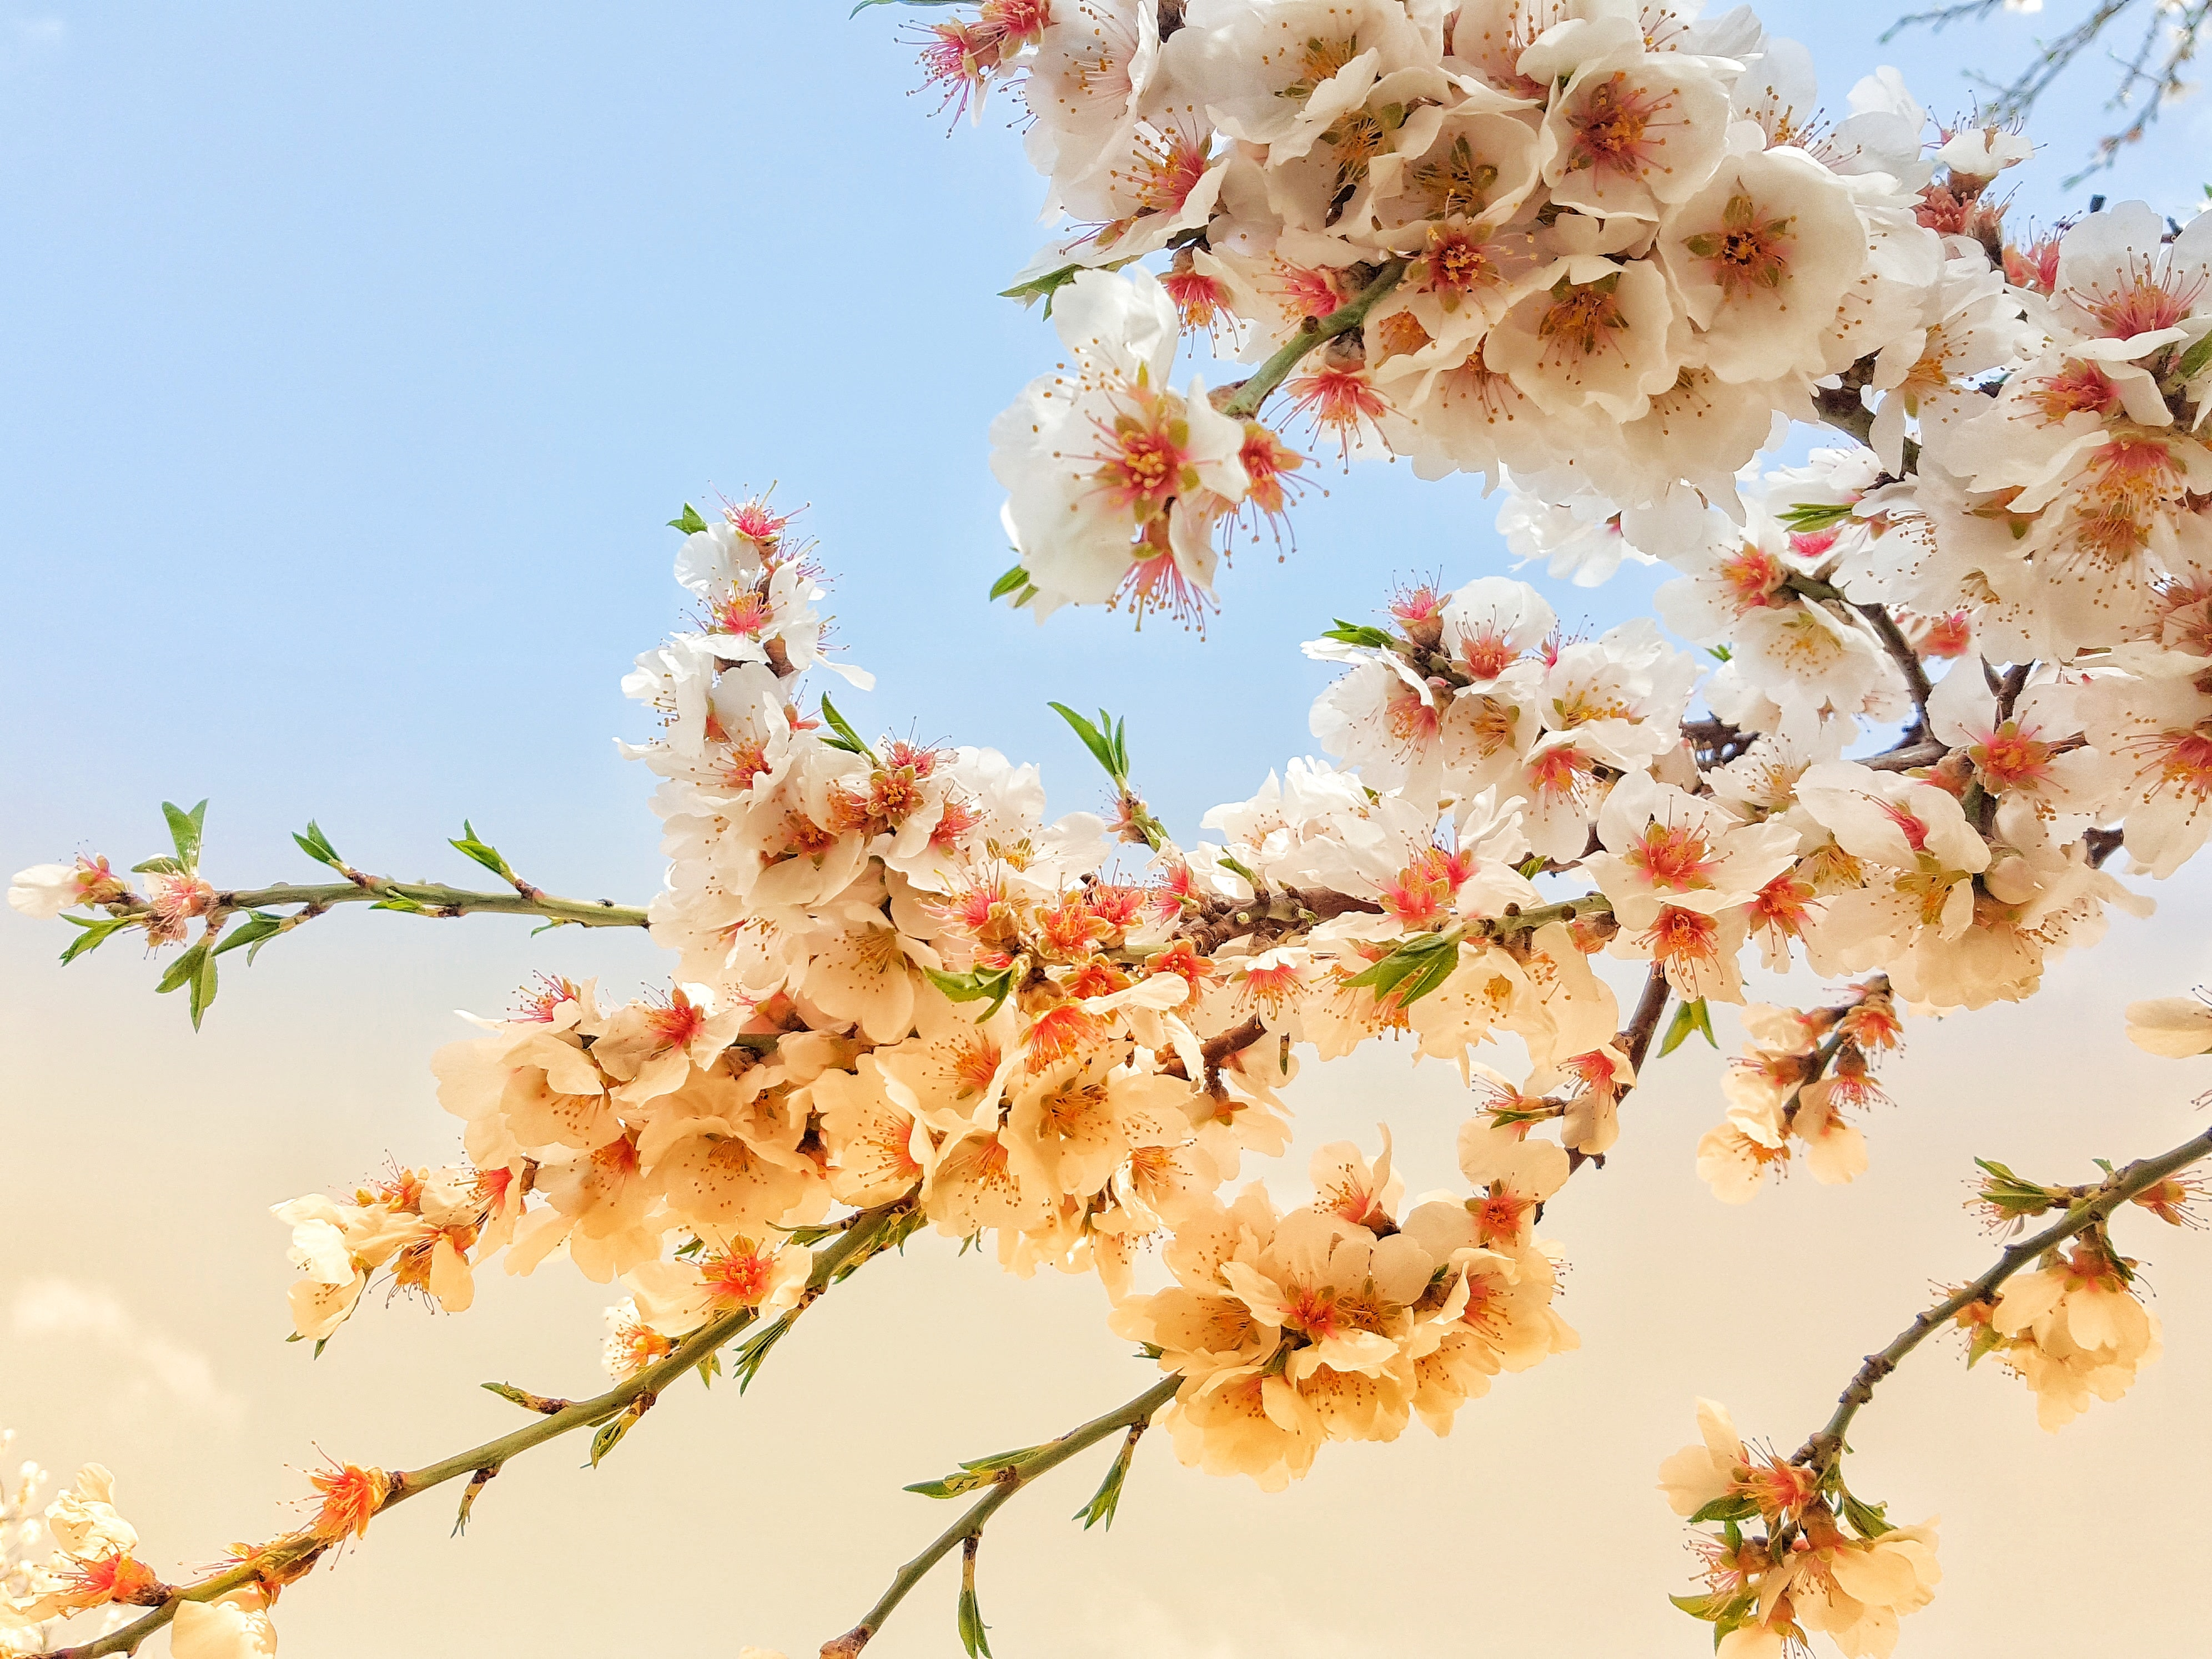 pink and white flowers under cloudy sky